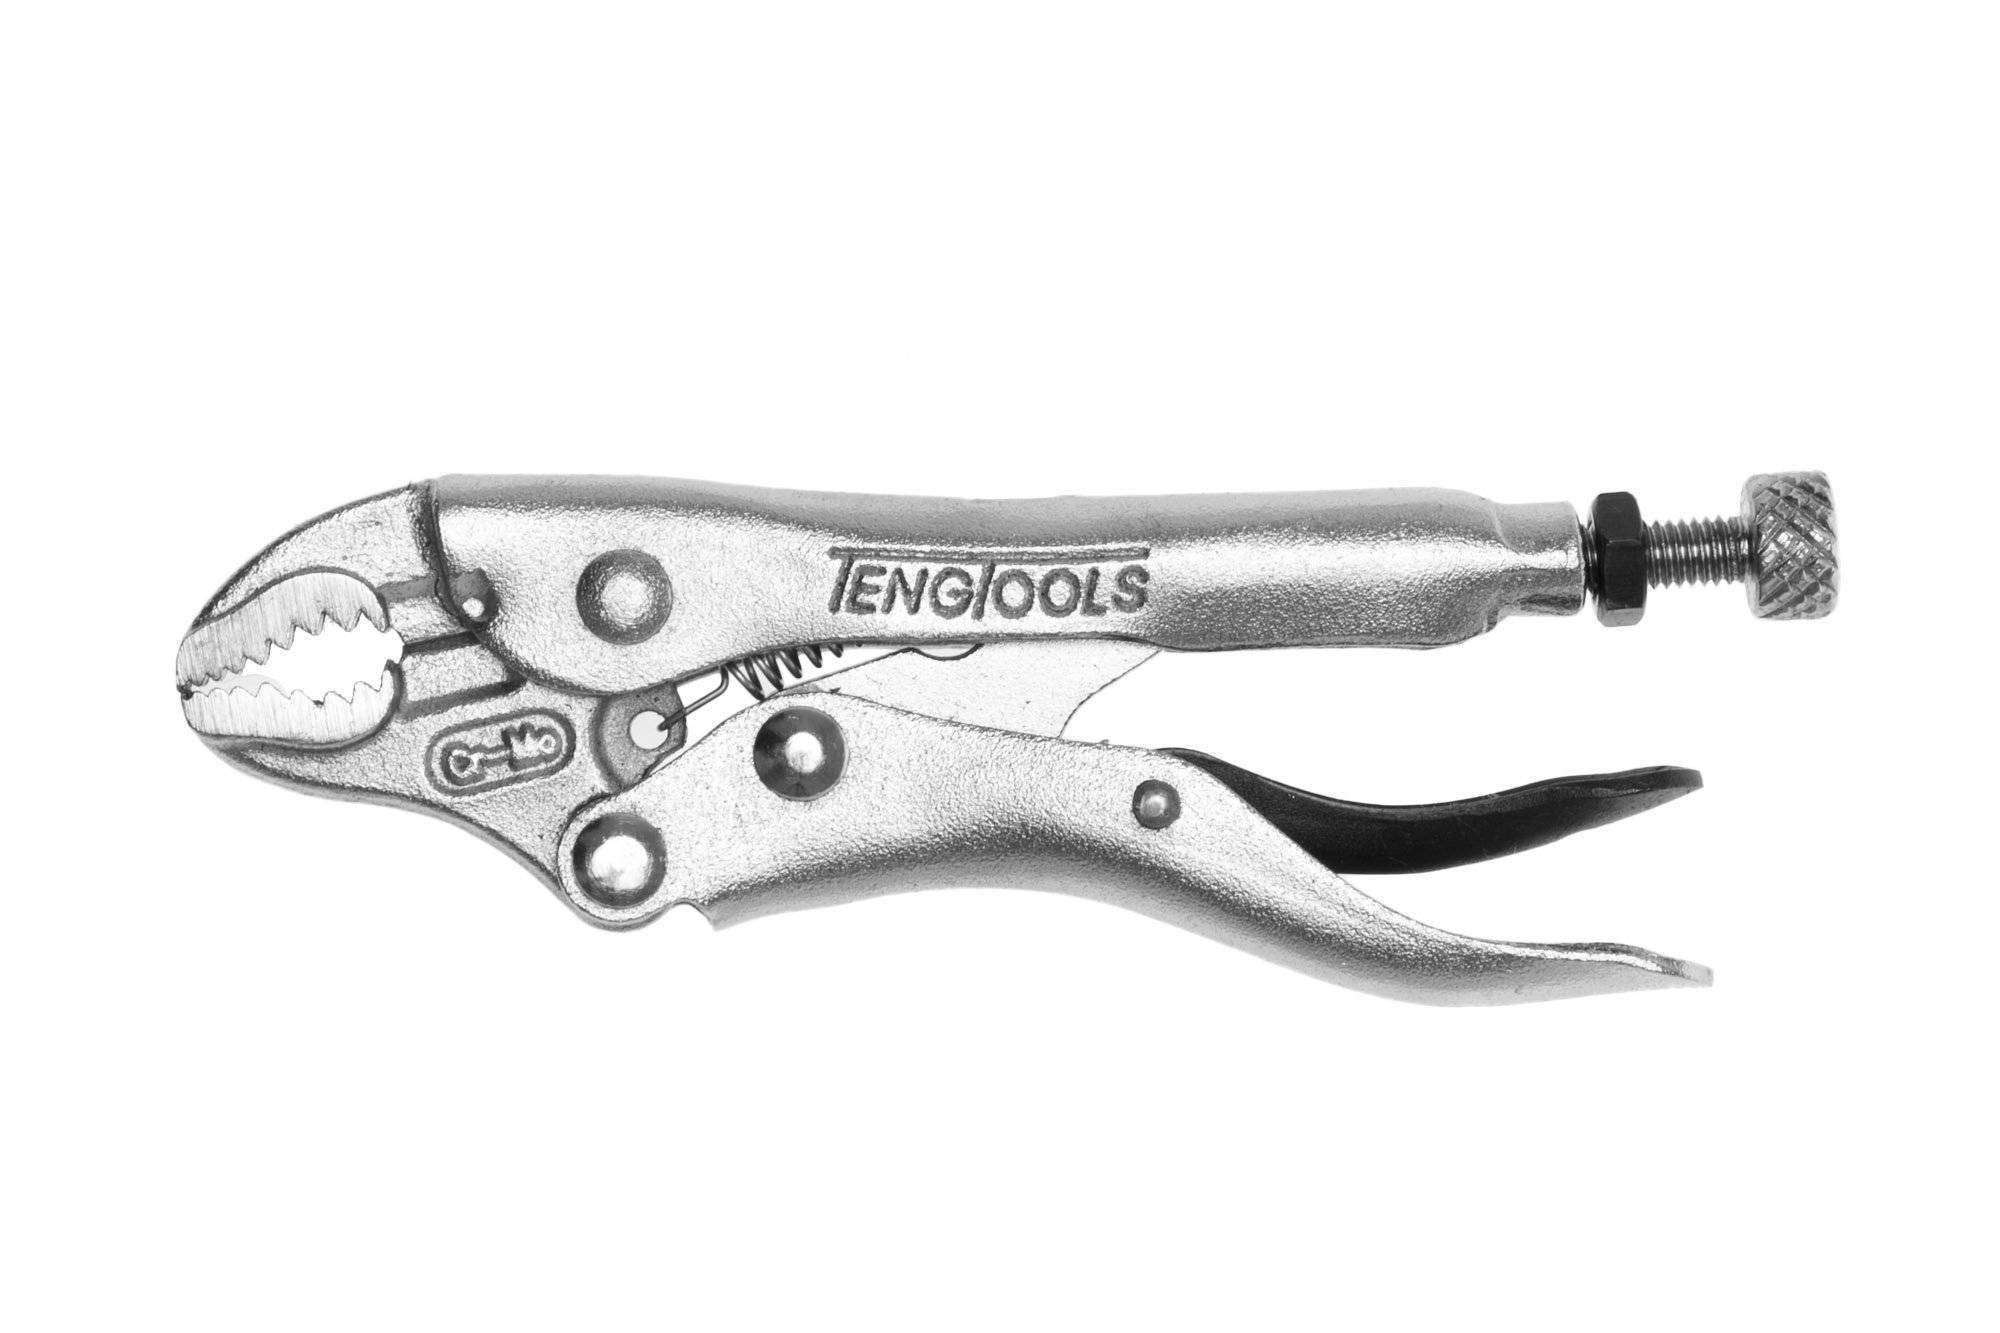 4 Inch Plated, Round & Flat Power Grip Locking Pliers - Teng Tools 401-4 - Teng Tools USA